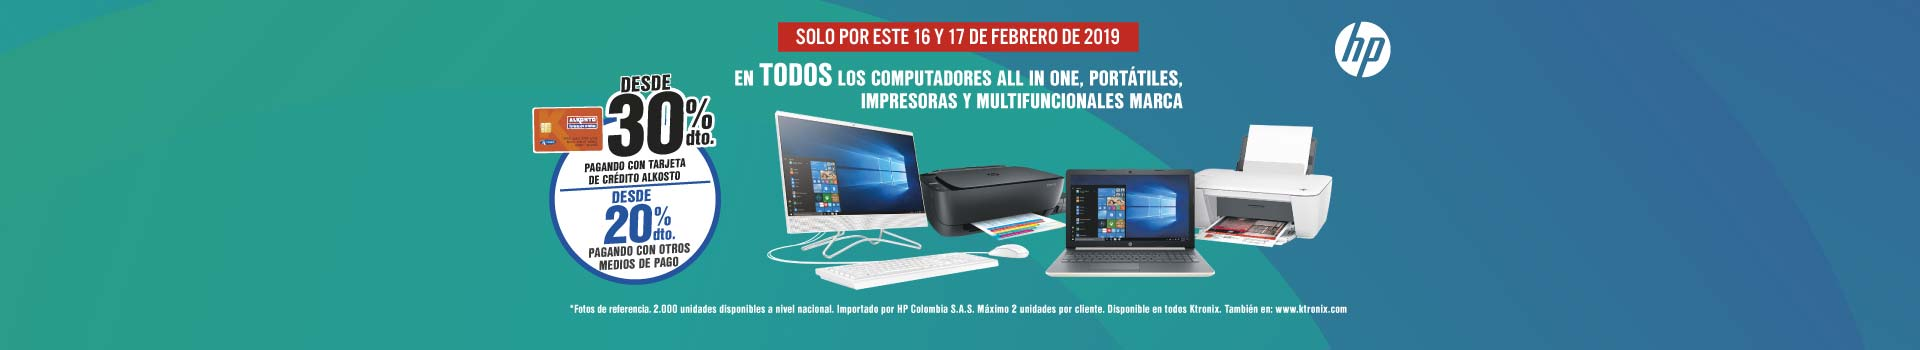 AK-KT-CAT-computadores y tablets-promo fds HP 16y17-feb15GC